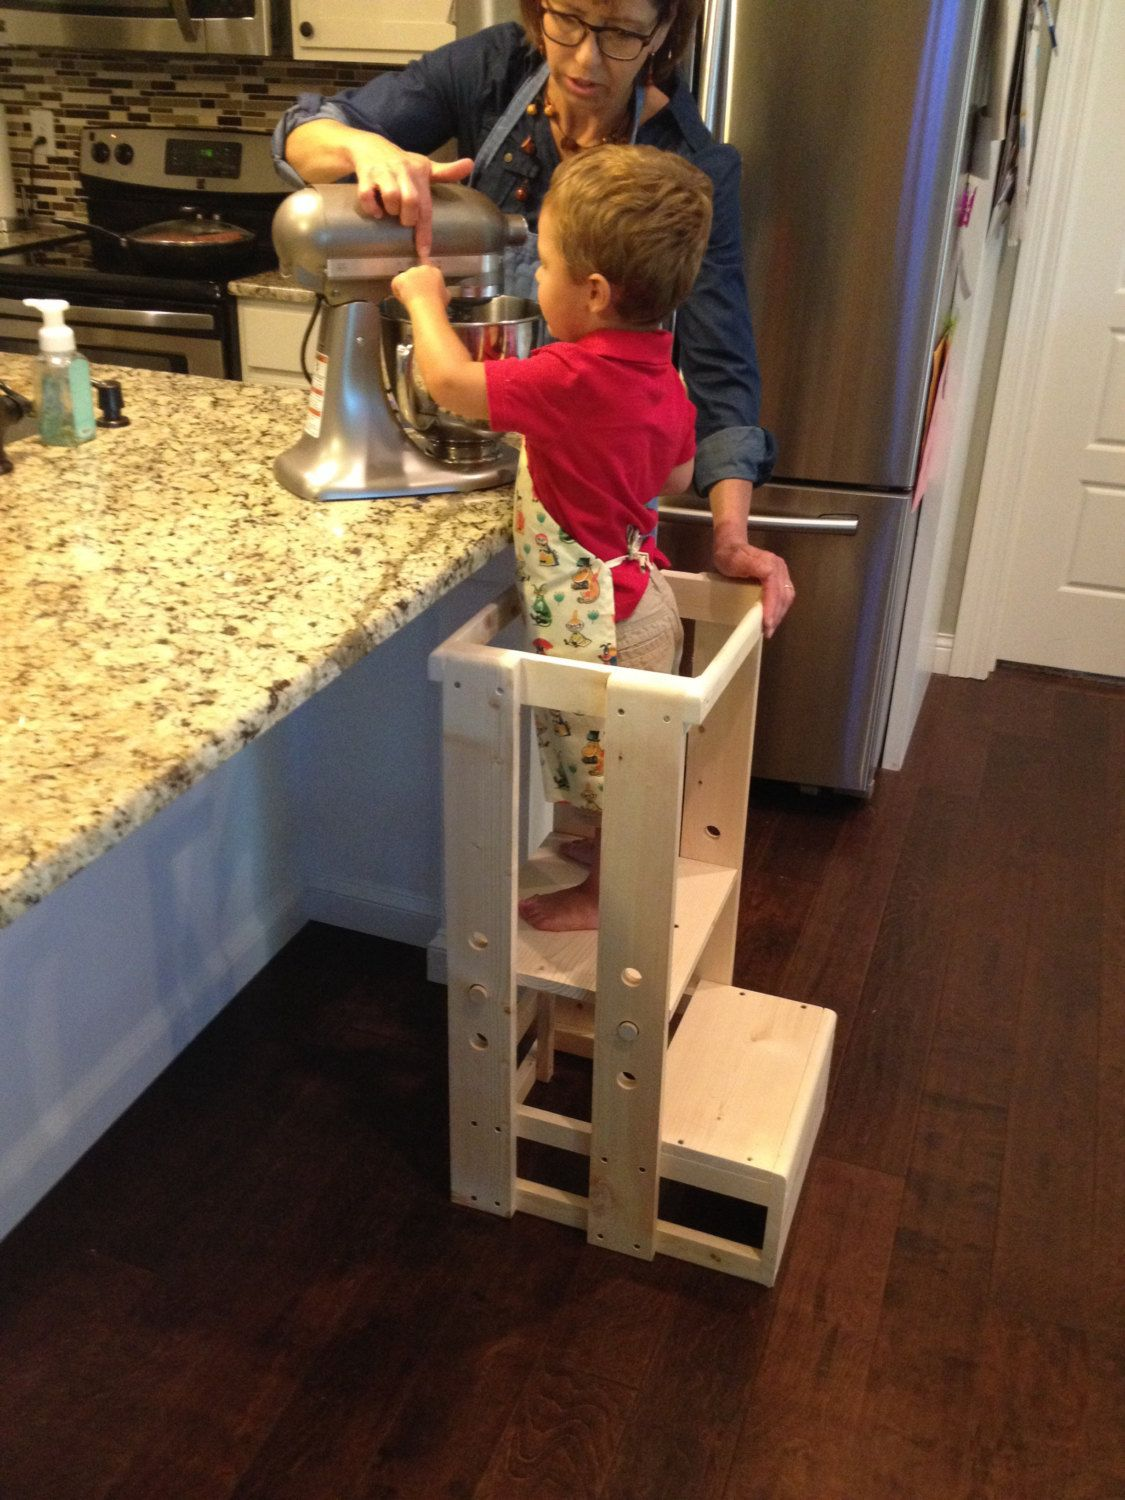 Child Kitchen Helper Step Stool This instead of Little Partner Learning Tower  sc 1 st  Pinterest & Your childs safety is worth every penny spent on this Tot Tower ... islam-shia.org